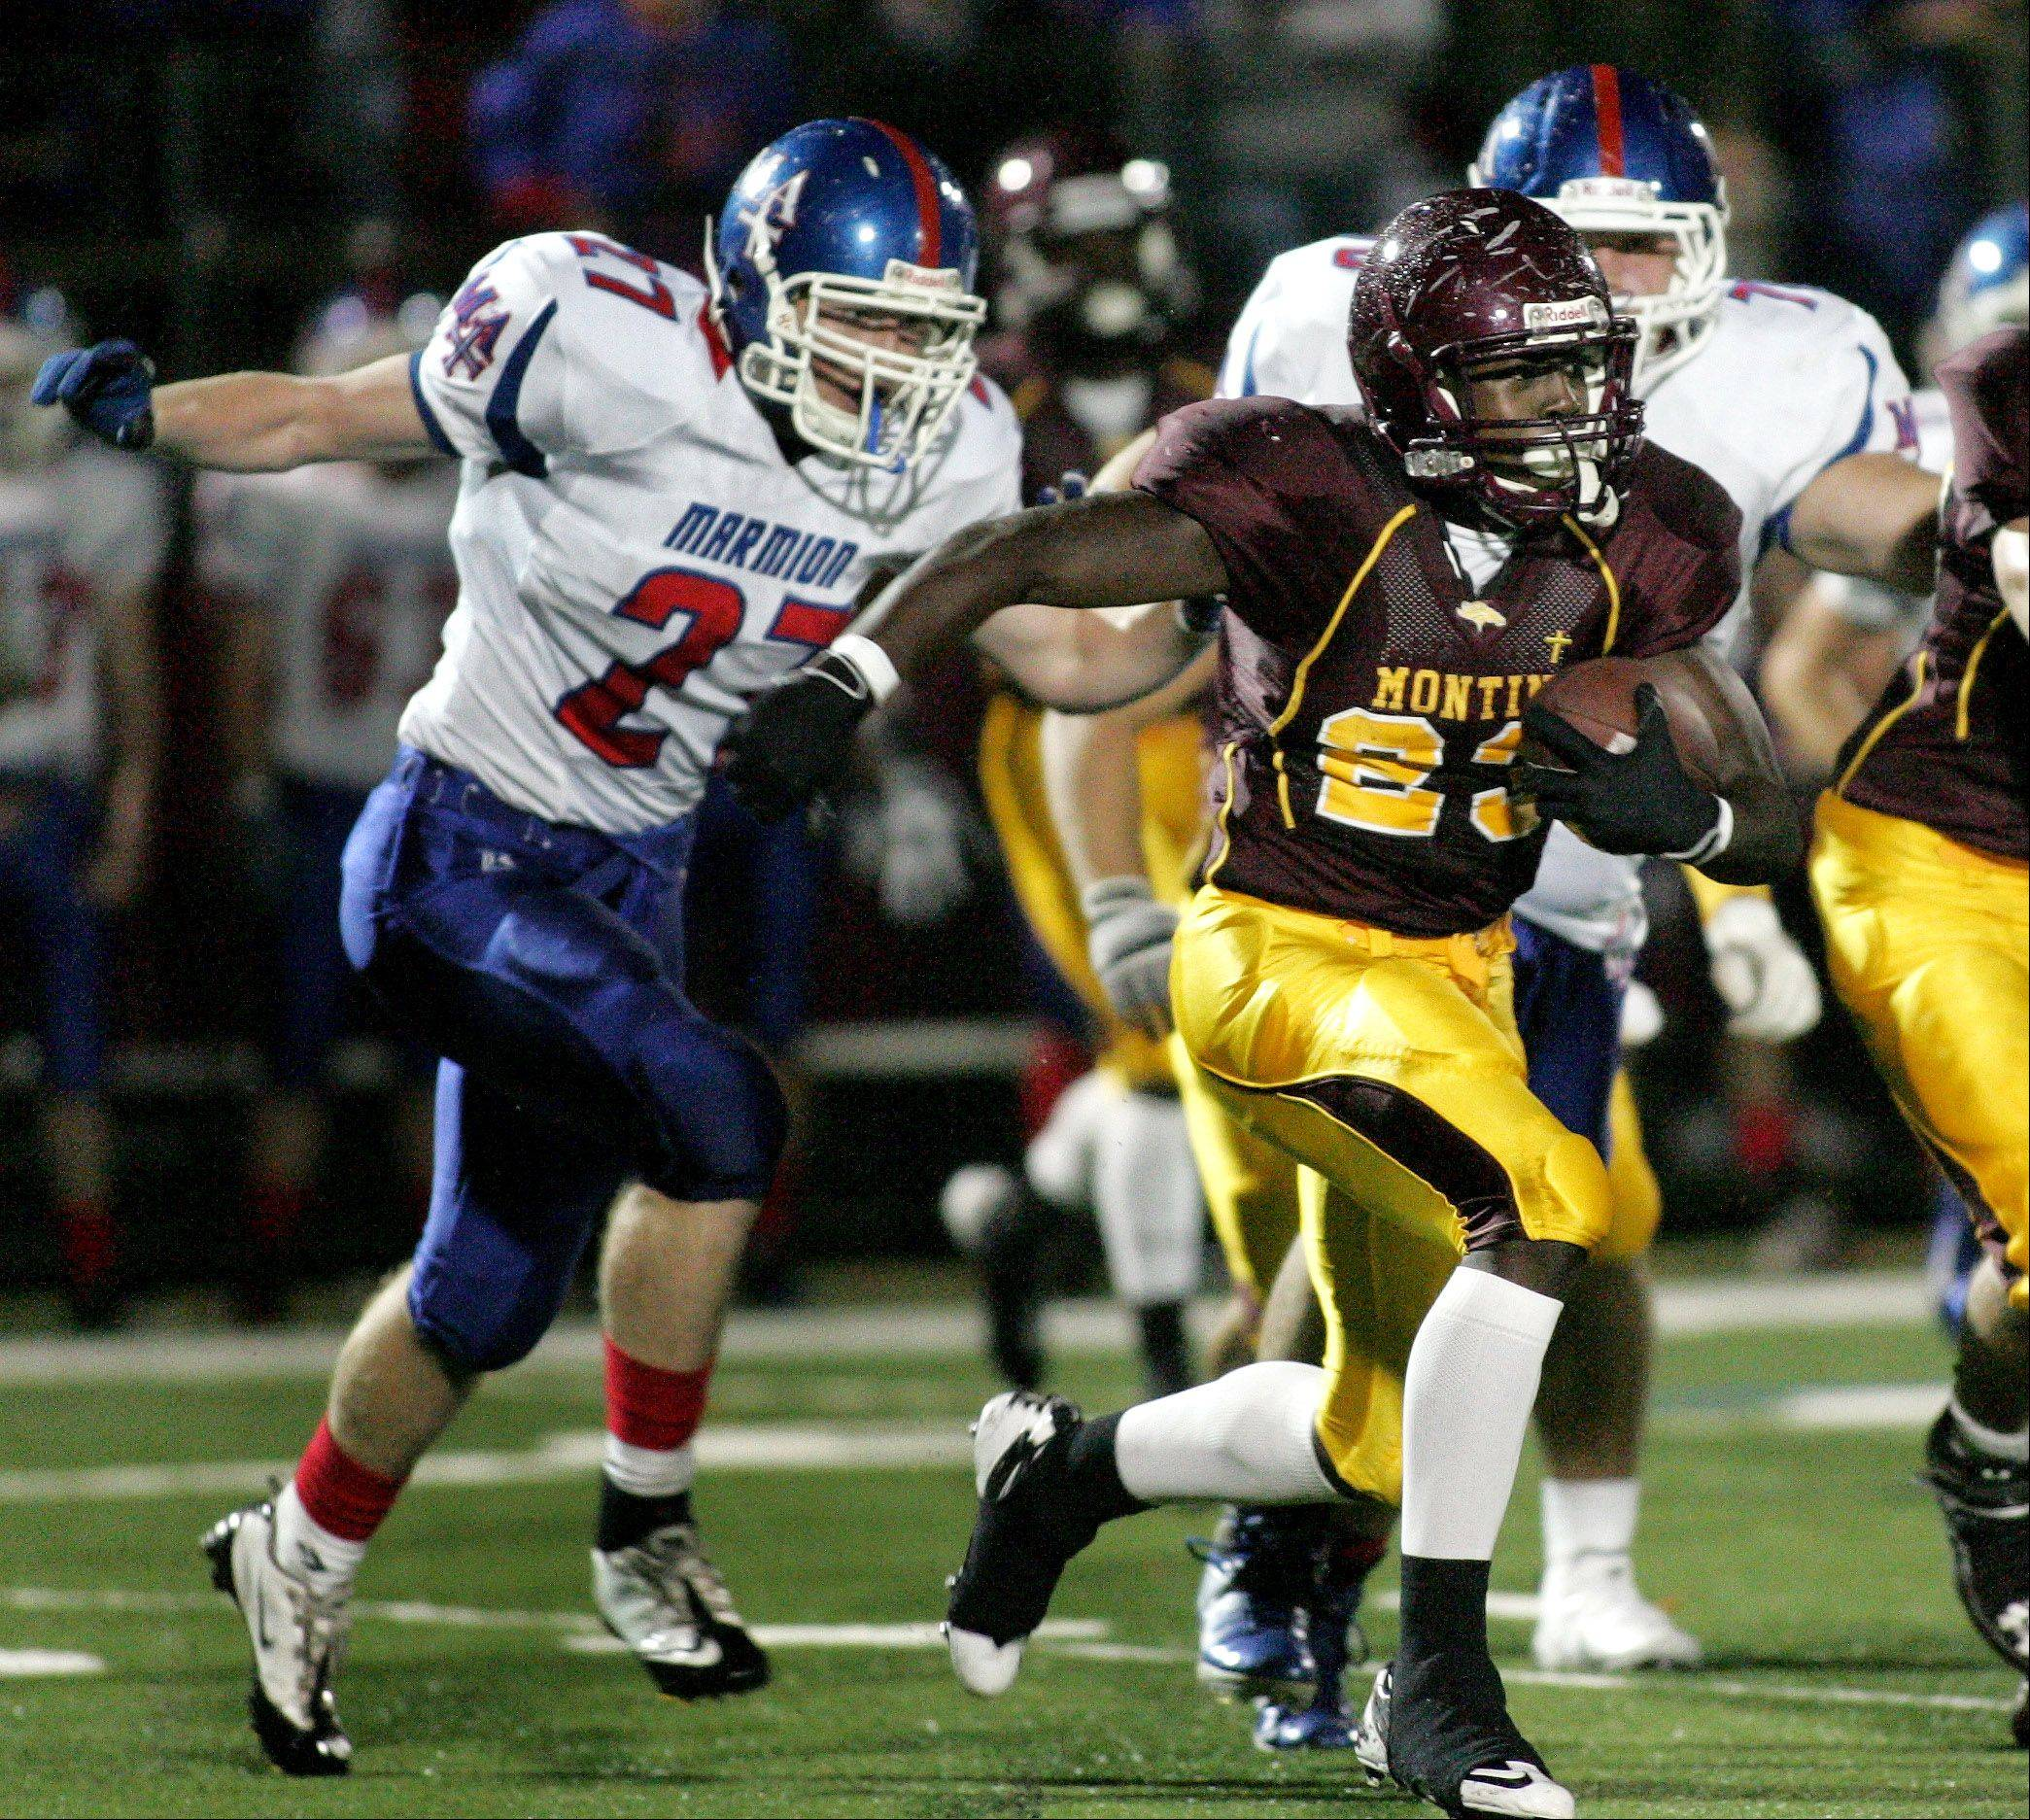 Dimitri Taylor of Montini breaks away from Marmion defense in football action Friday in Lombard.